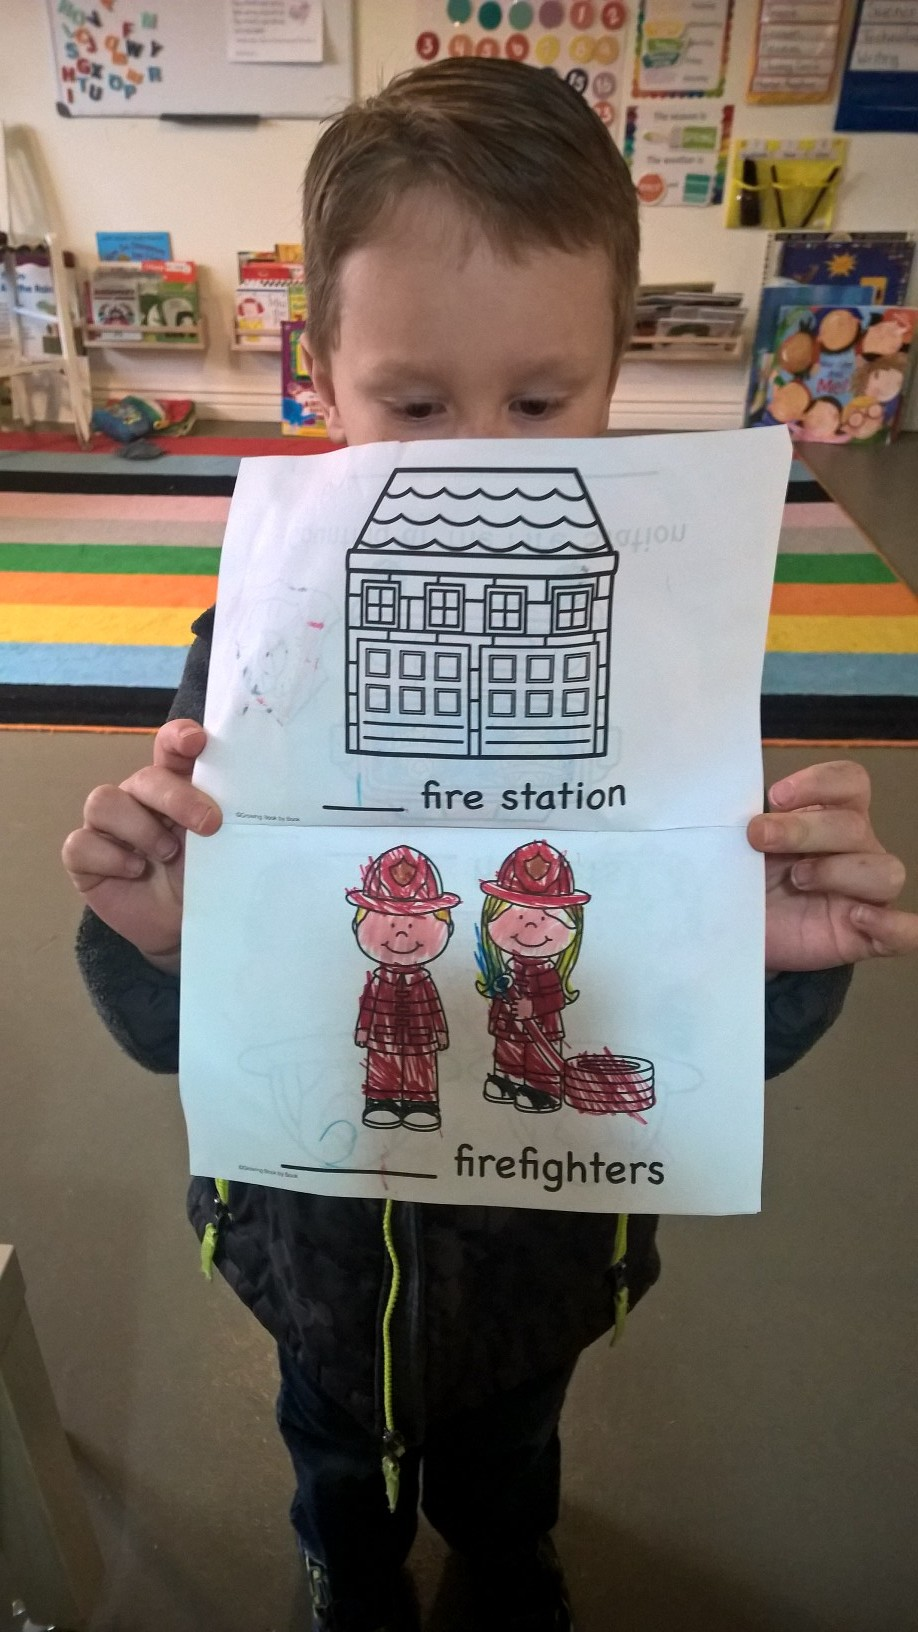 Firefighter Counting Book.